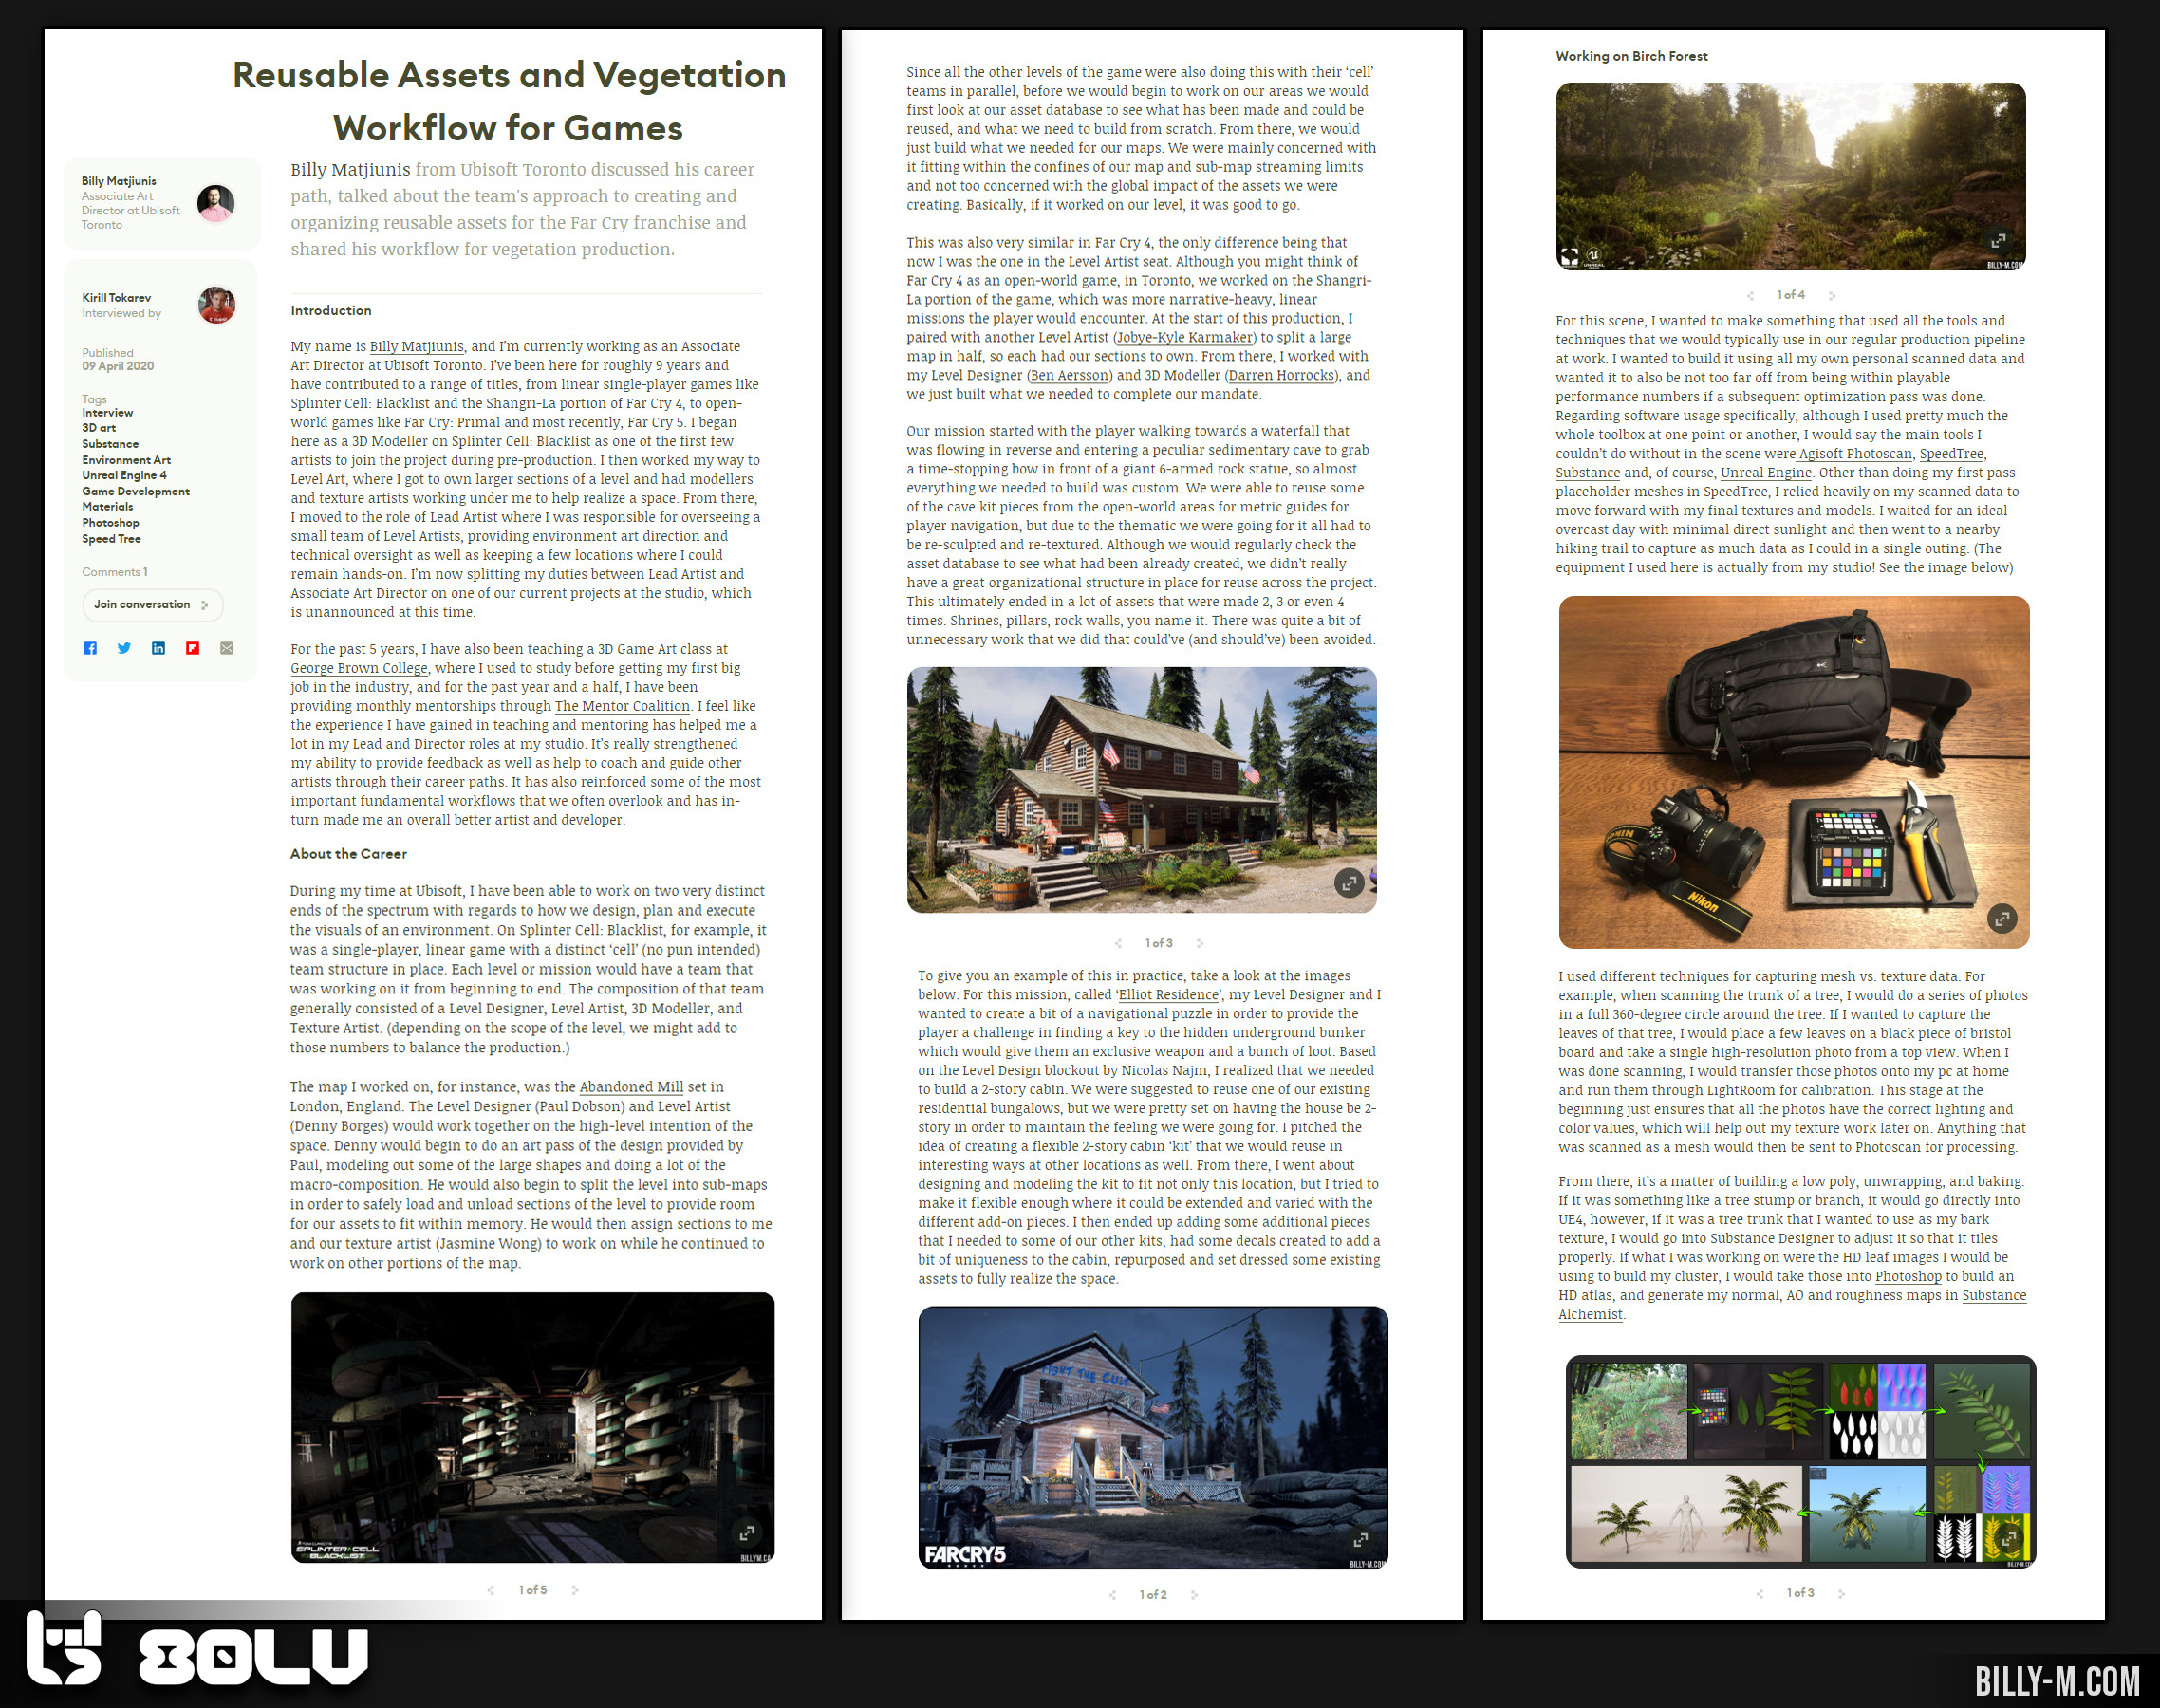 Read the full article here: https://80.lv/articles/far-cry-games-reusable-assets-and-vegetation-workflow/